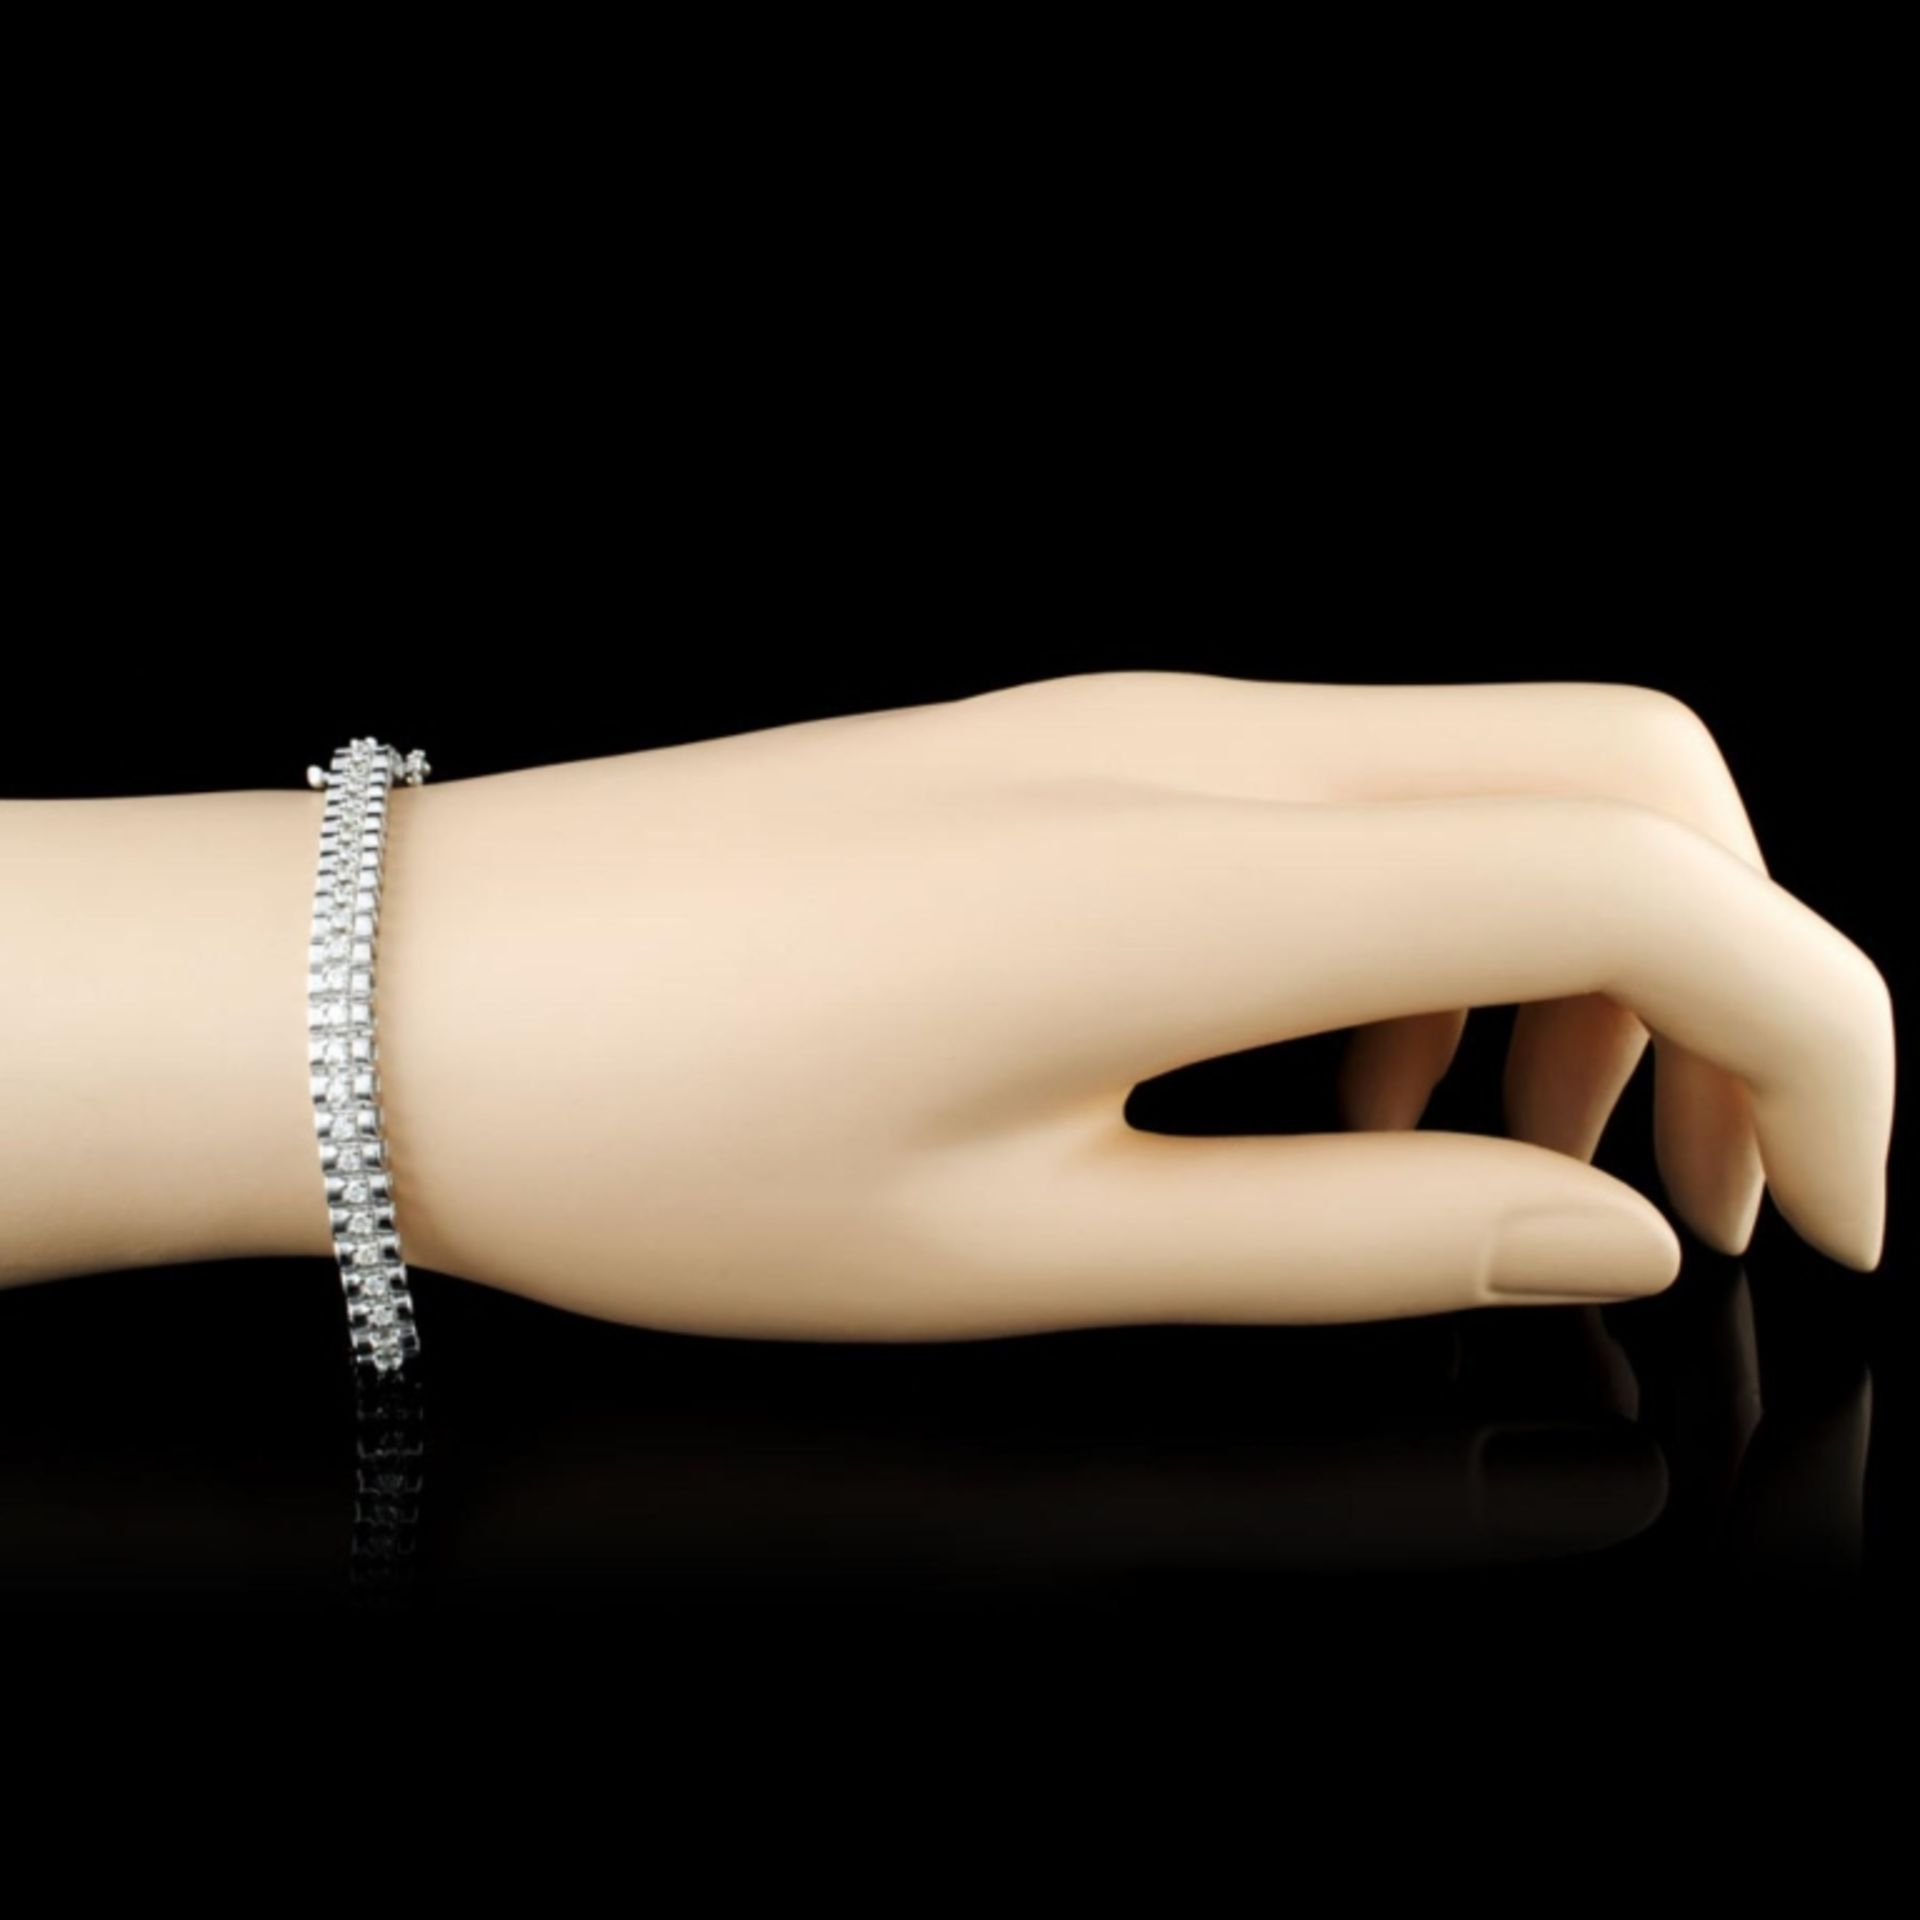 14K Gold 2.00ctw Diamond Bracelet - Image 3 of 4